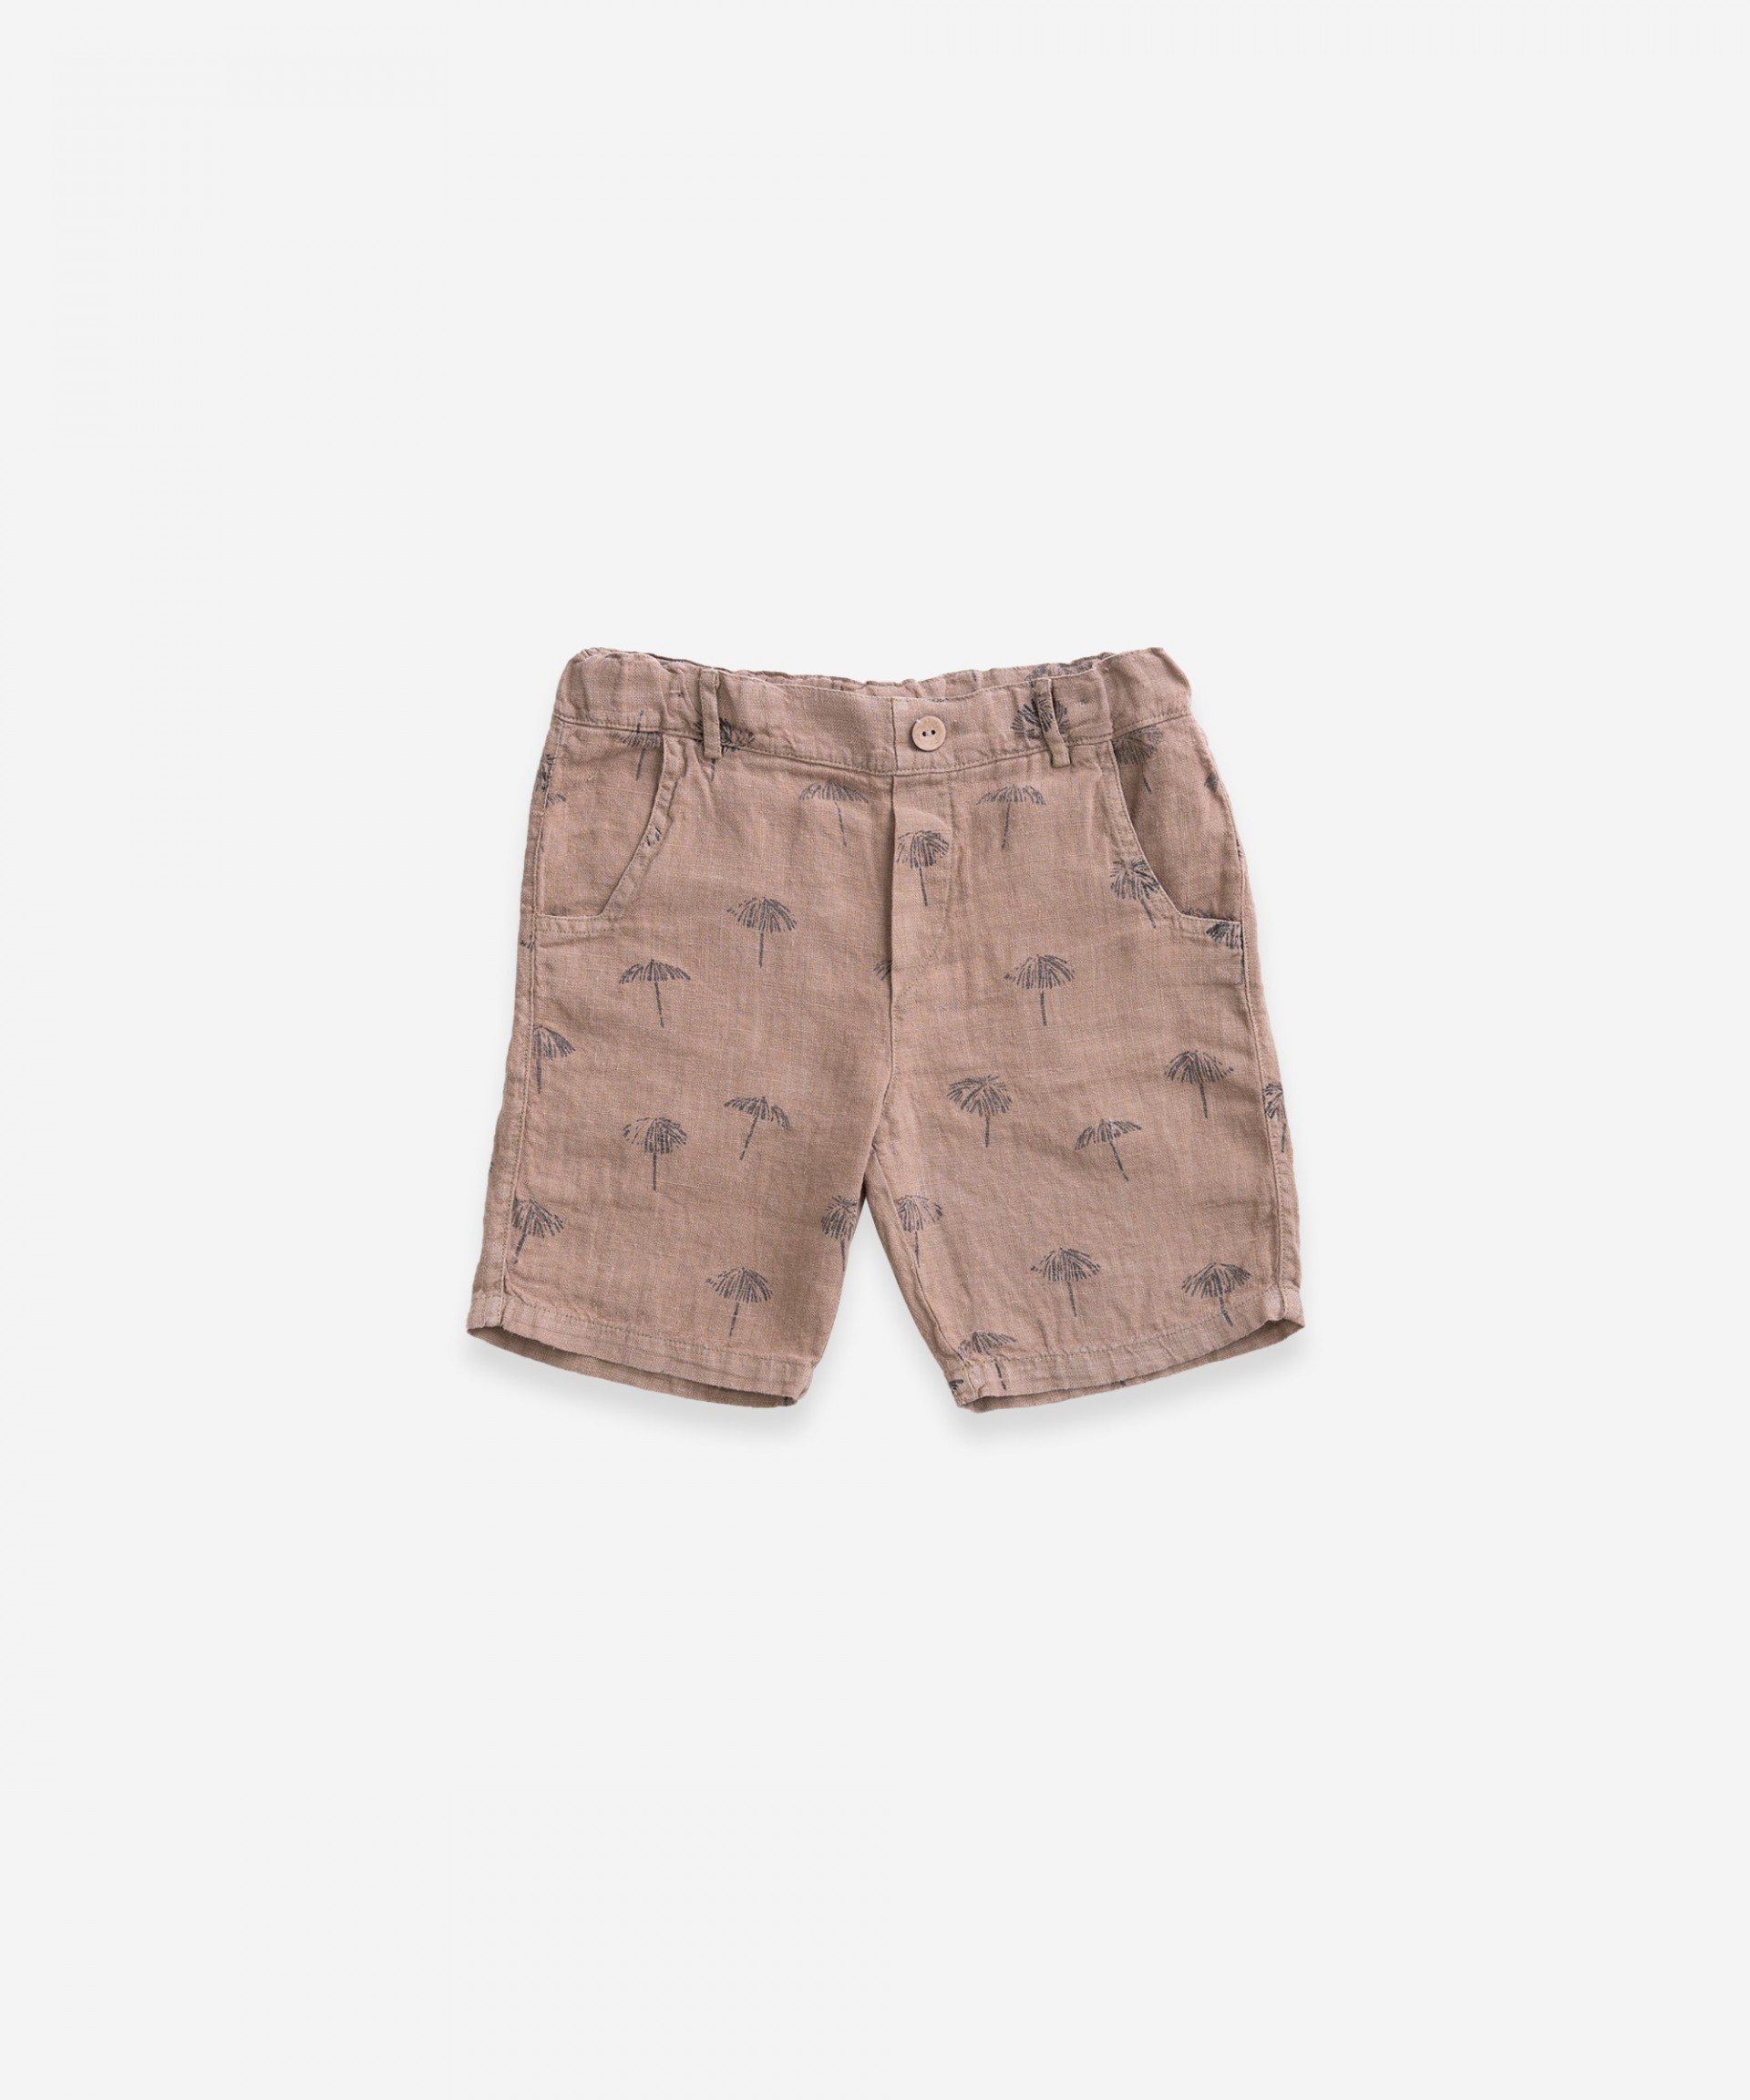 Linen shorts with pockets | Weaving